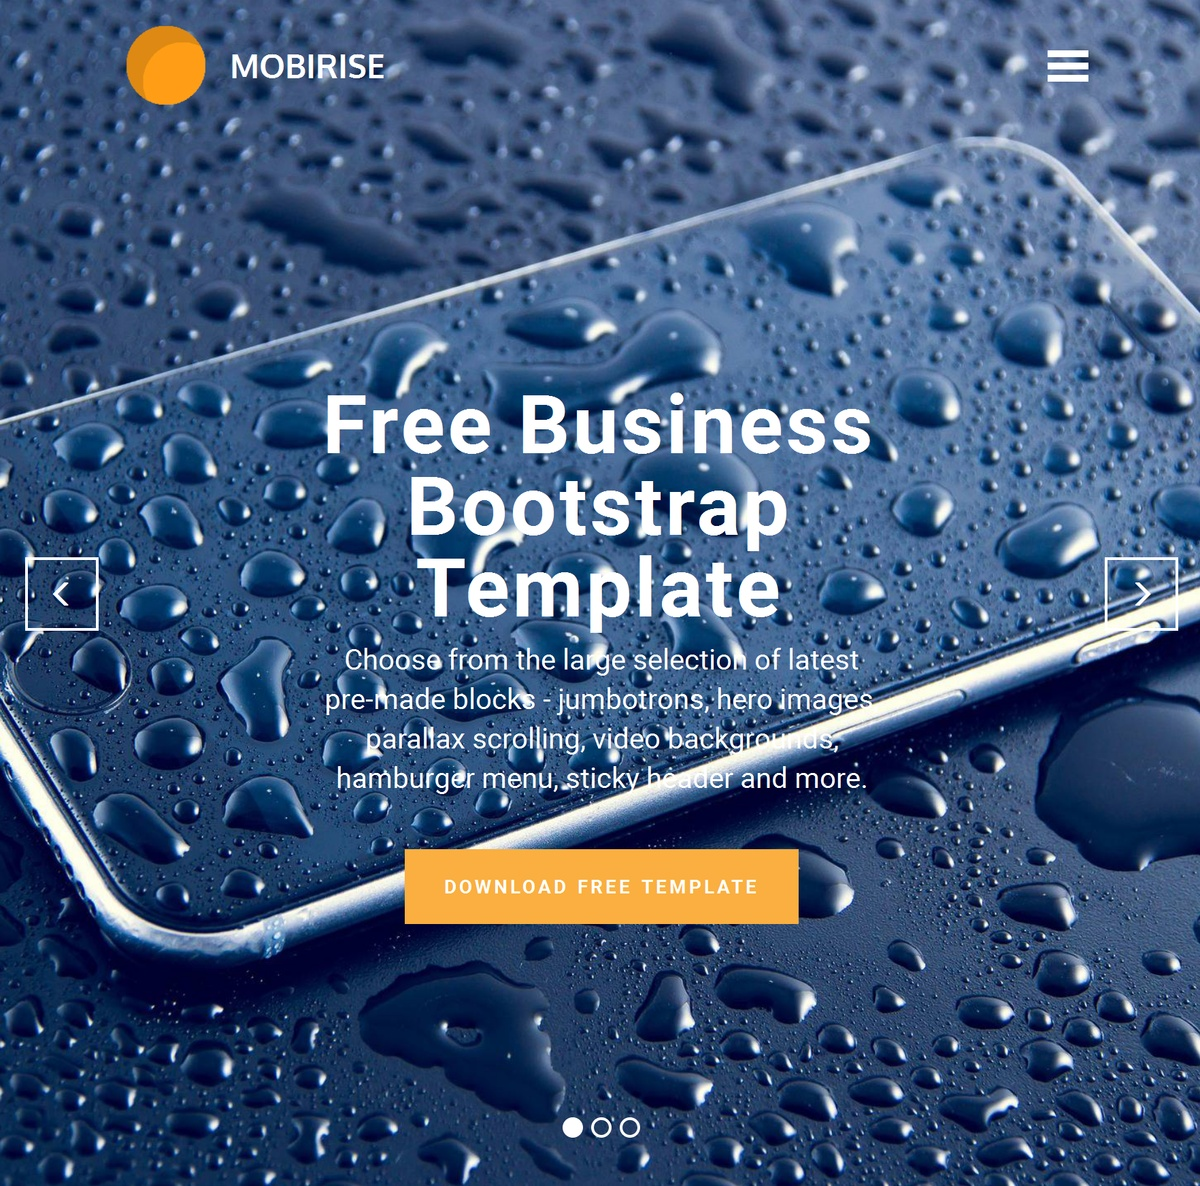 HTML Responsive Site Templates Themes Extensions